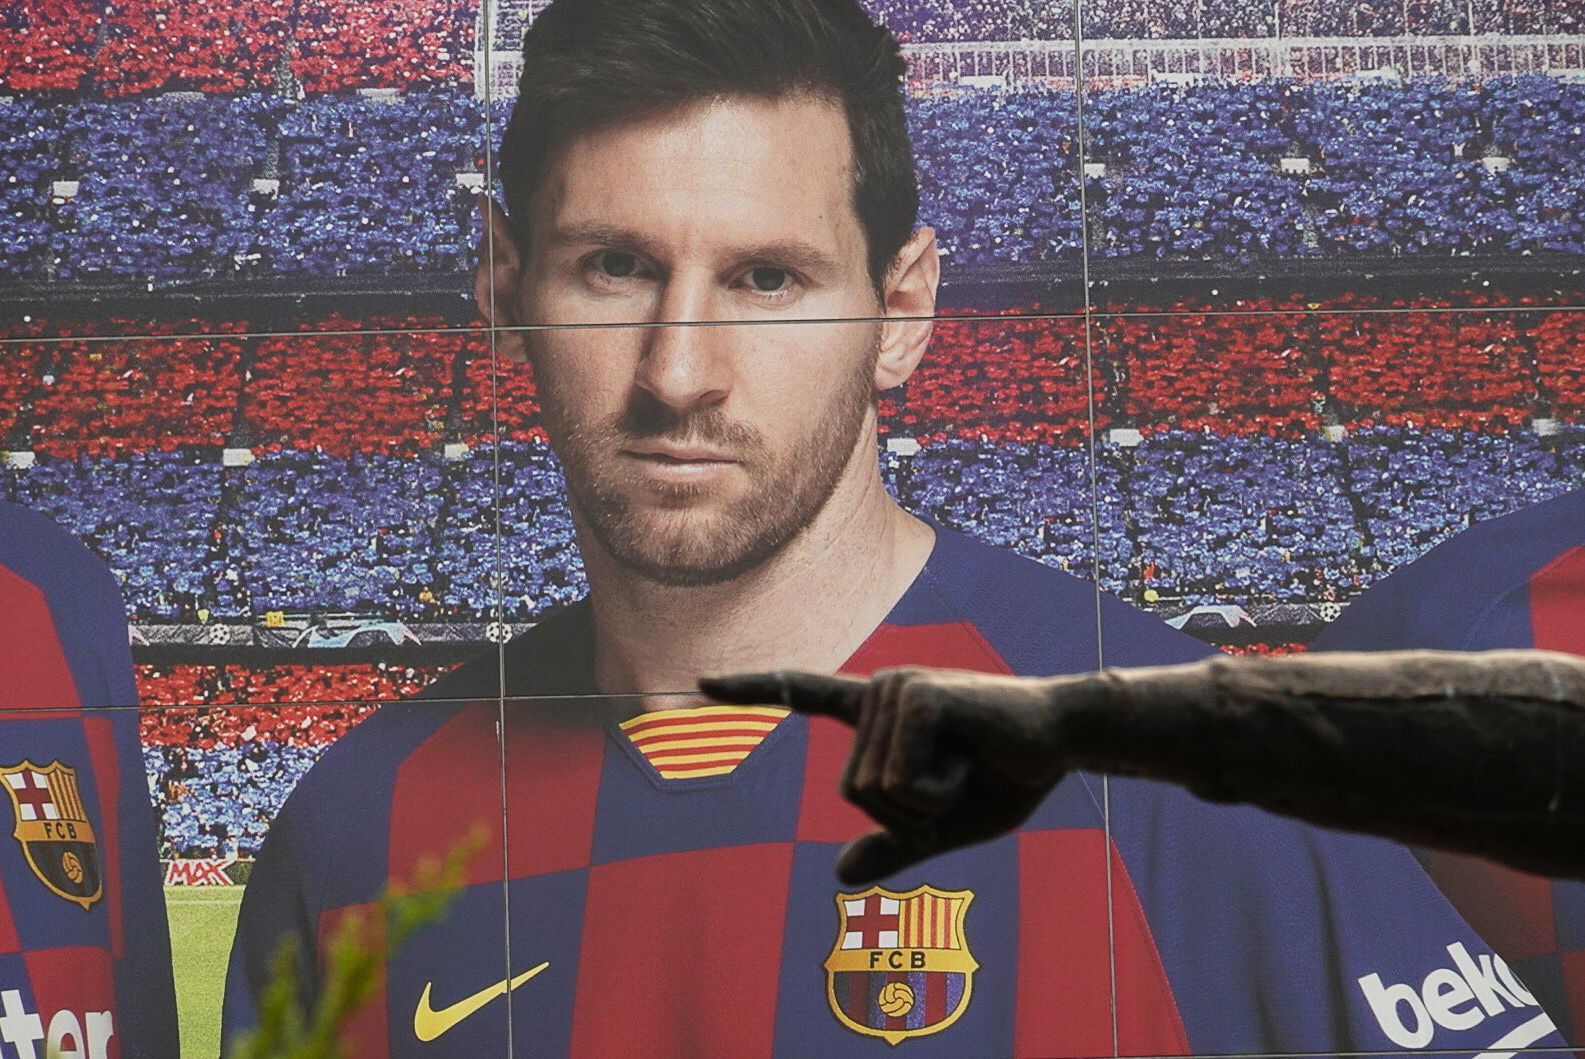 Lionel Messi announced to leave FC Barcelona, Spain - 28 Aug 2020